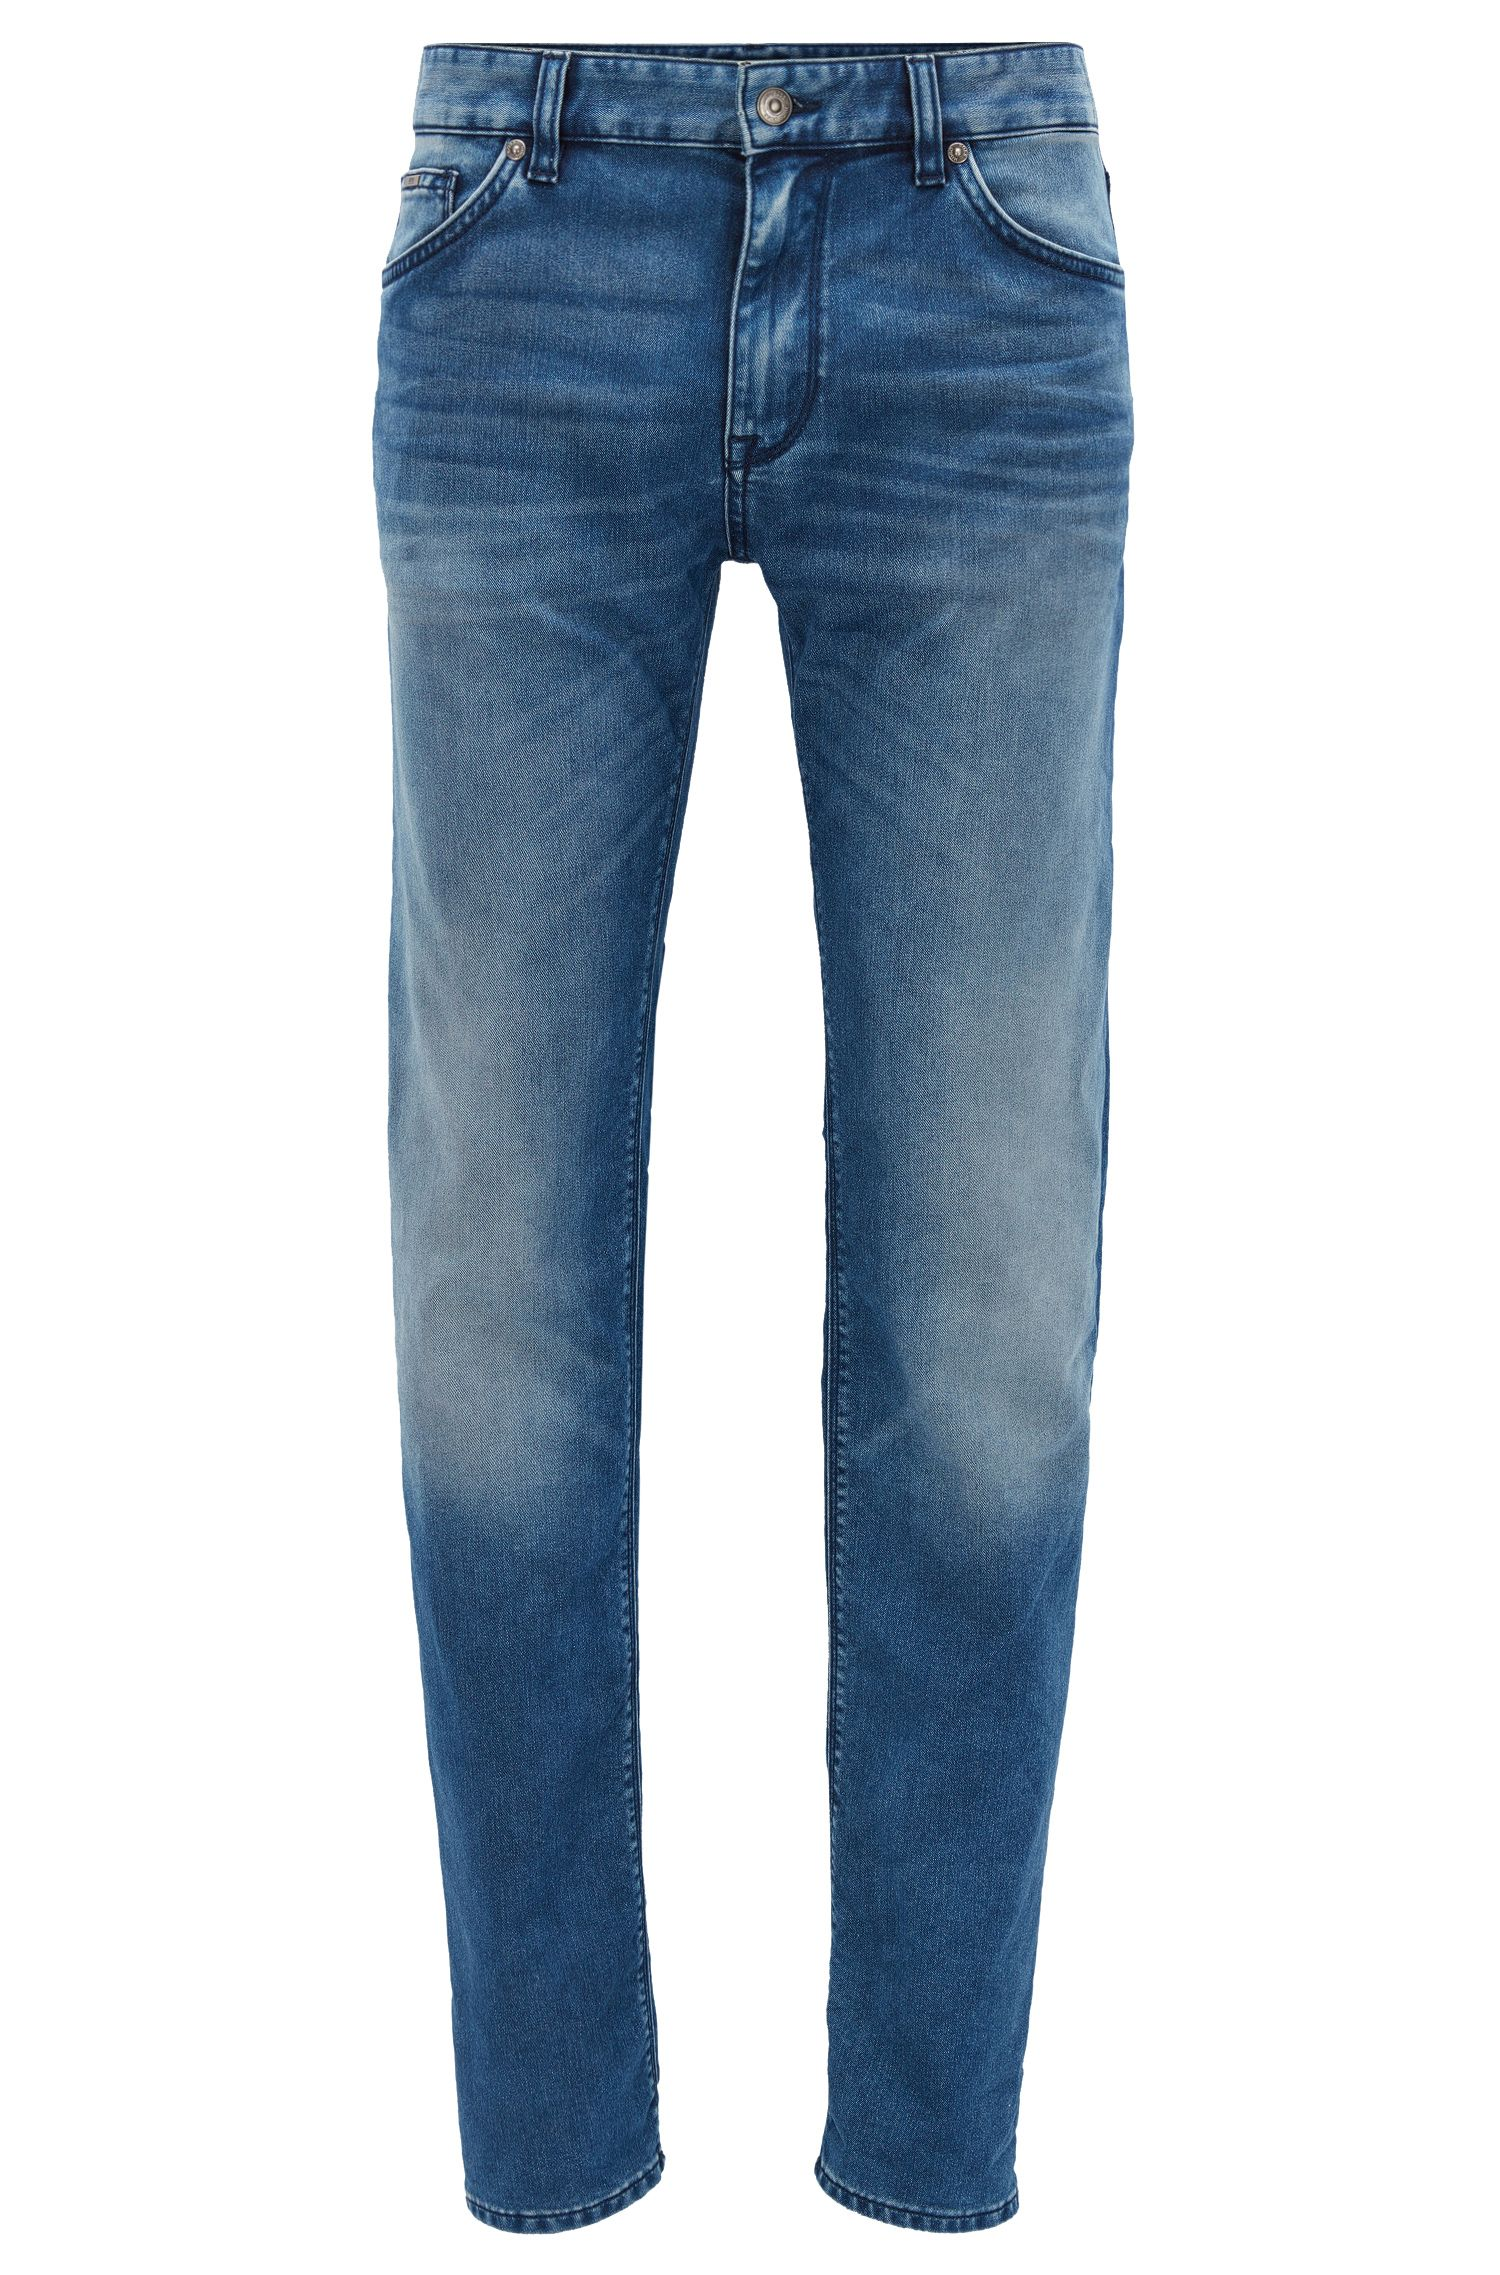 Jeans Regular Fit en denim stretch bleu foncé à la finition usée